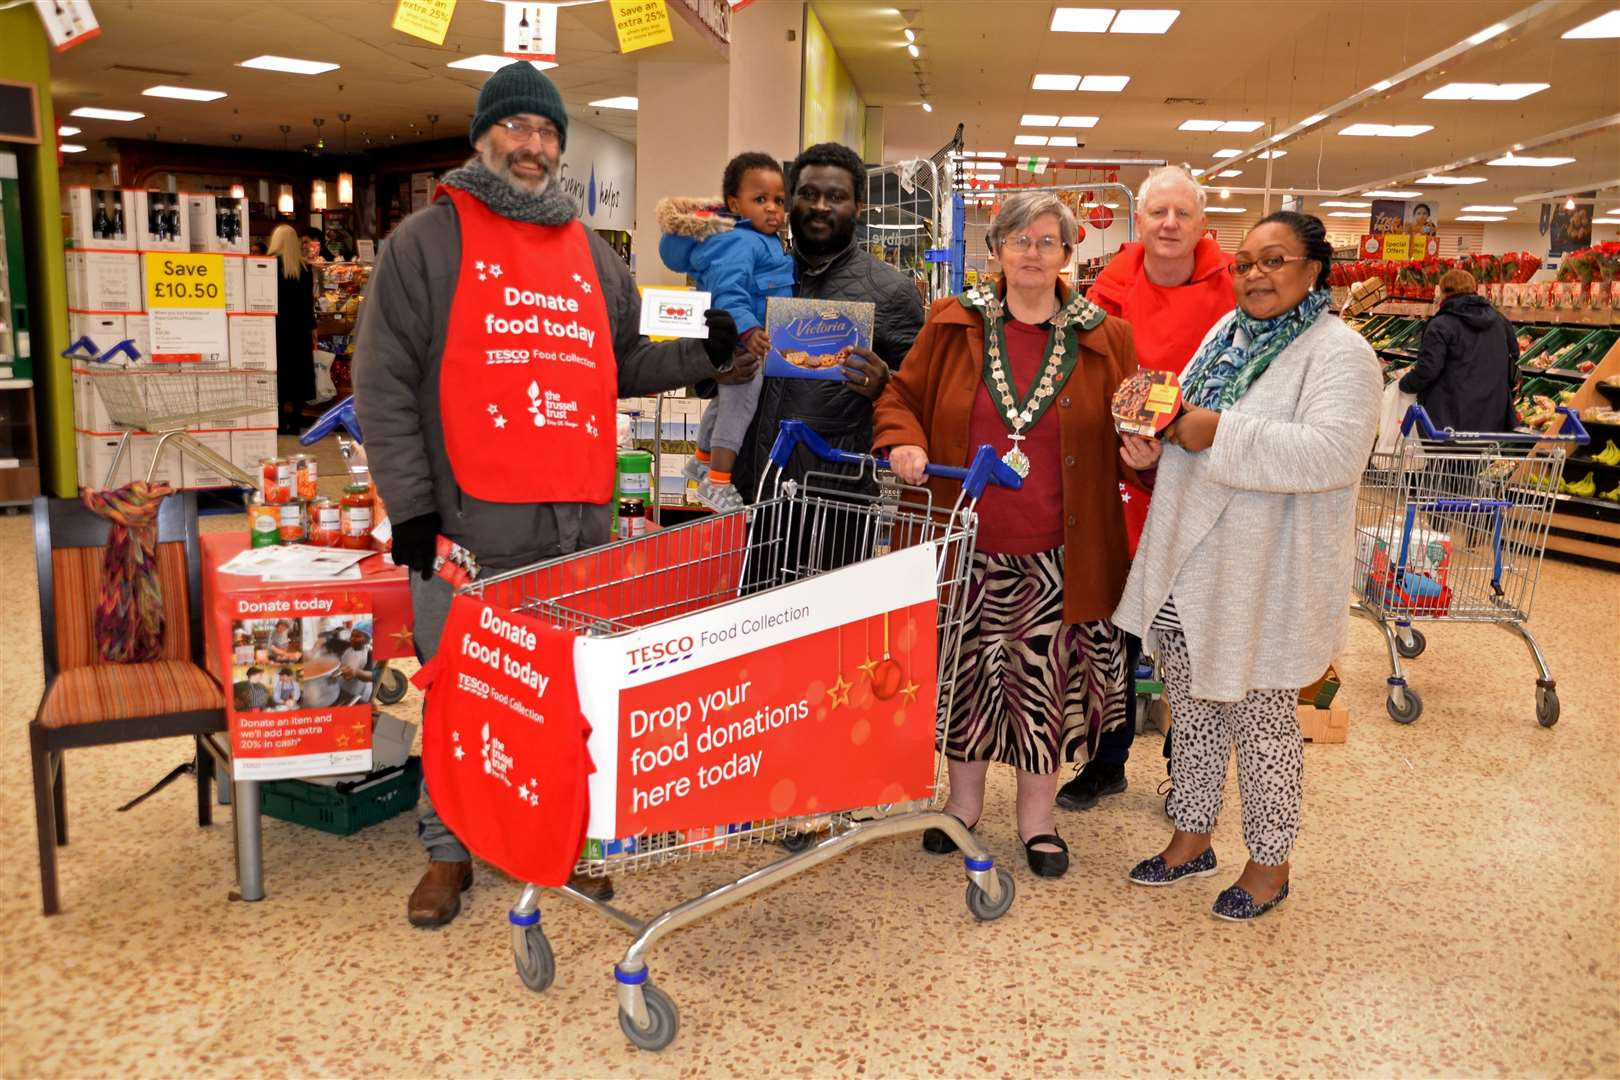 Tesco Bishops Park, Bishops Stortford.Foodbank collection. l-r: Frank Beran, Philip and Sedem (2) Freitas, Cllr Norma Symonds, Bill Macdonald and Nana Freitas..Pic: Vikki Lince. (22581674)